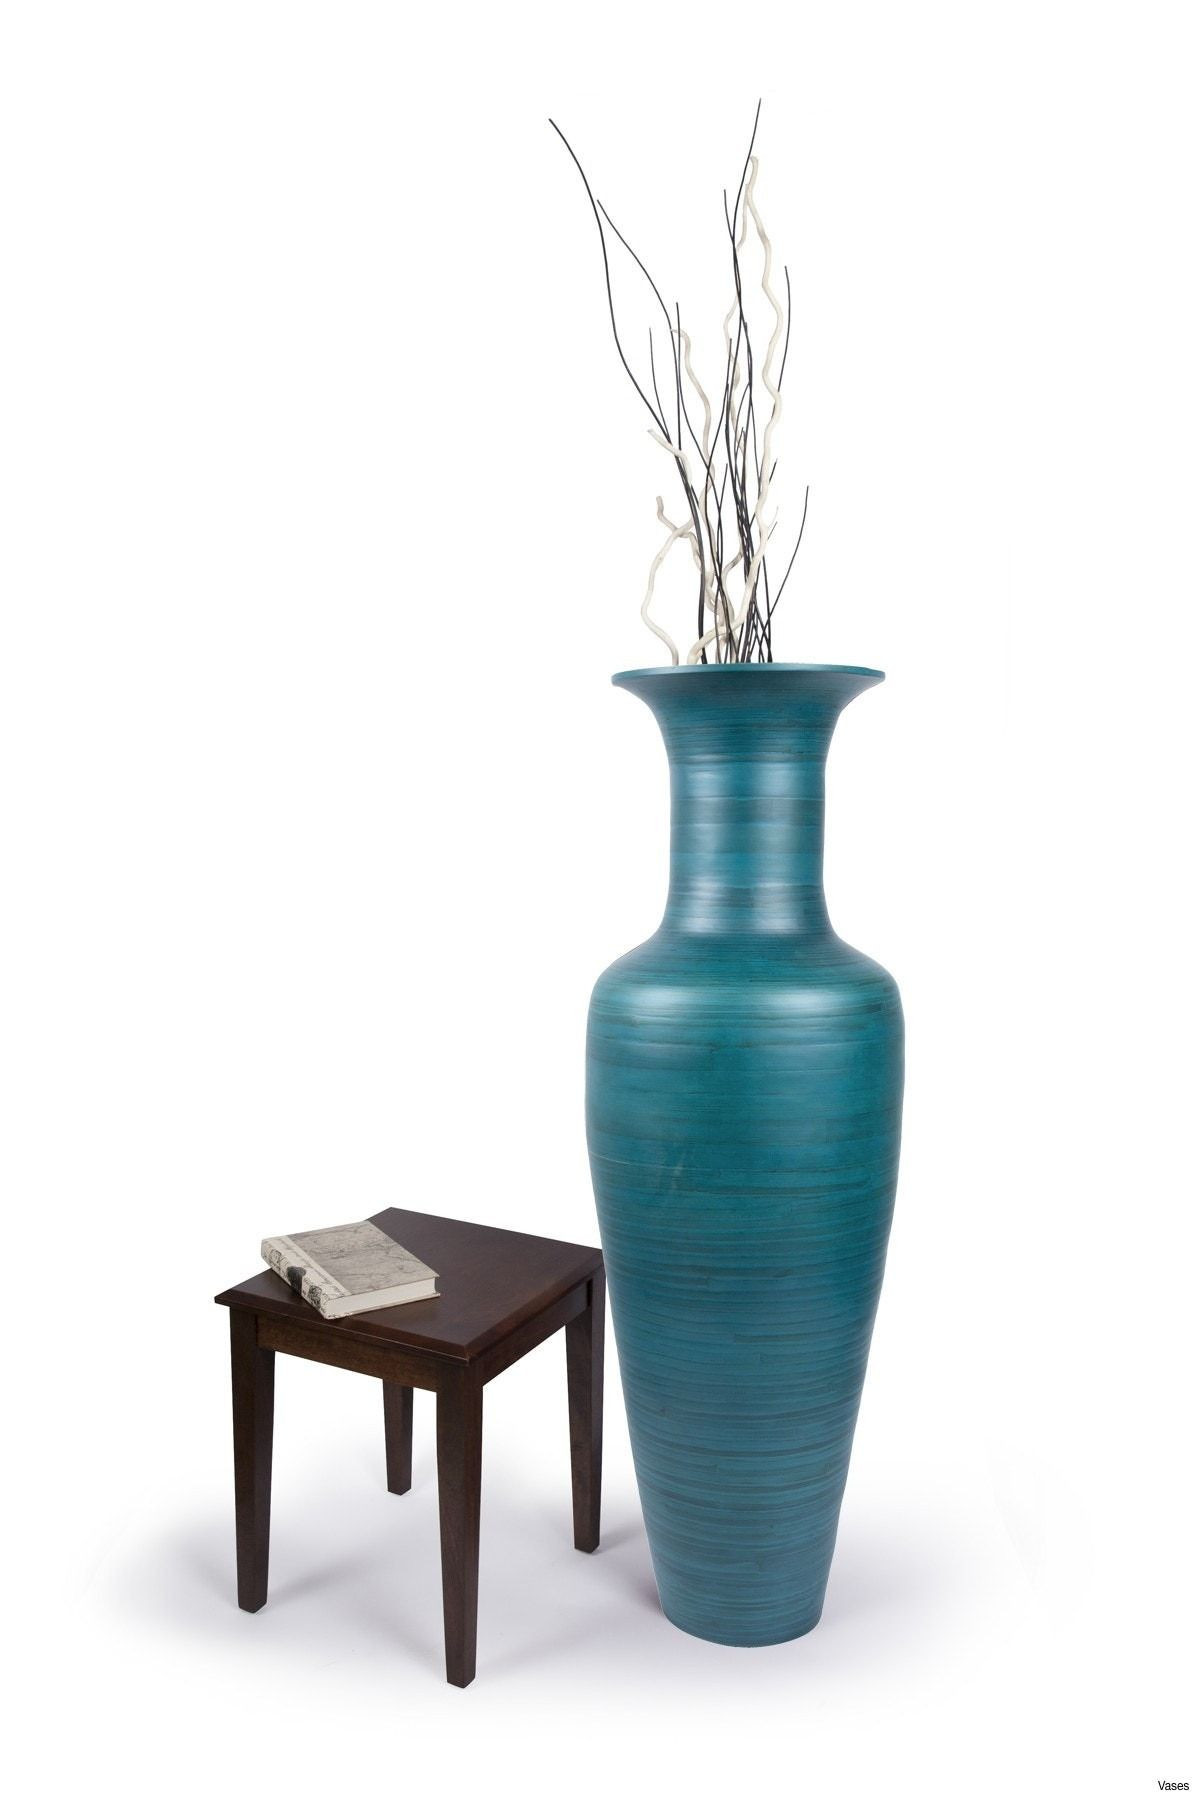 23 attractive Large Turquoise Floor Vase 2021 free download large turquoise floor vase of tall vase with sticks elegant blue floor new inspiring blue floor intended for tall vase with sticks elegant blue floor new inspiring blue floor vases home desi